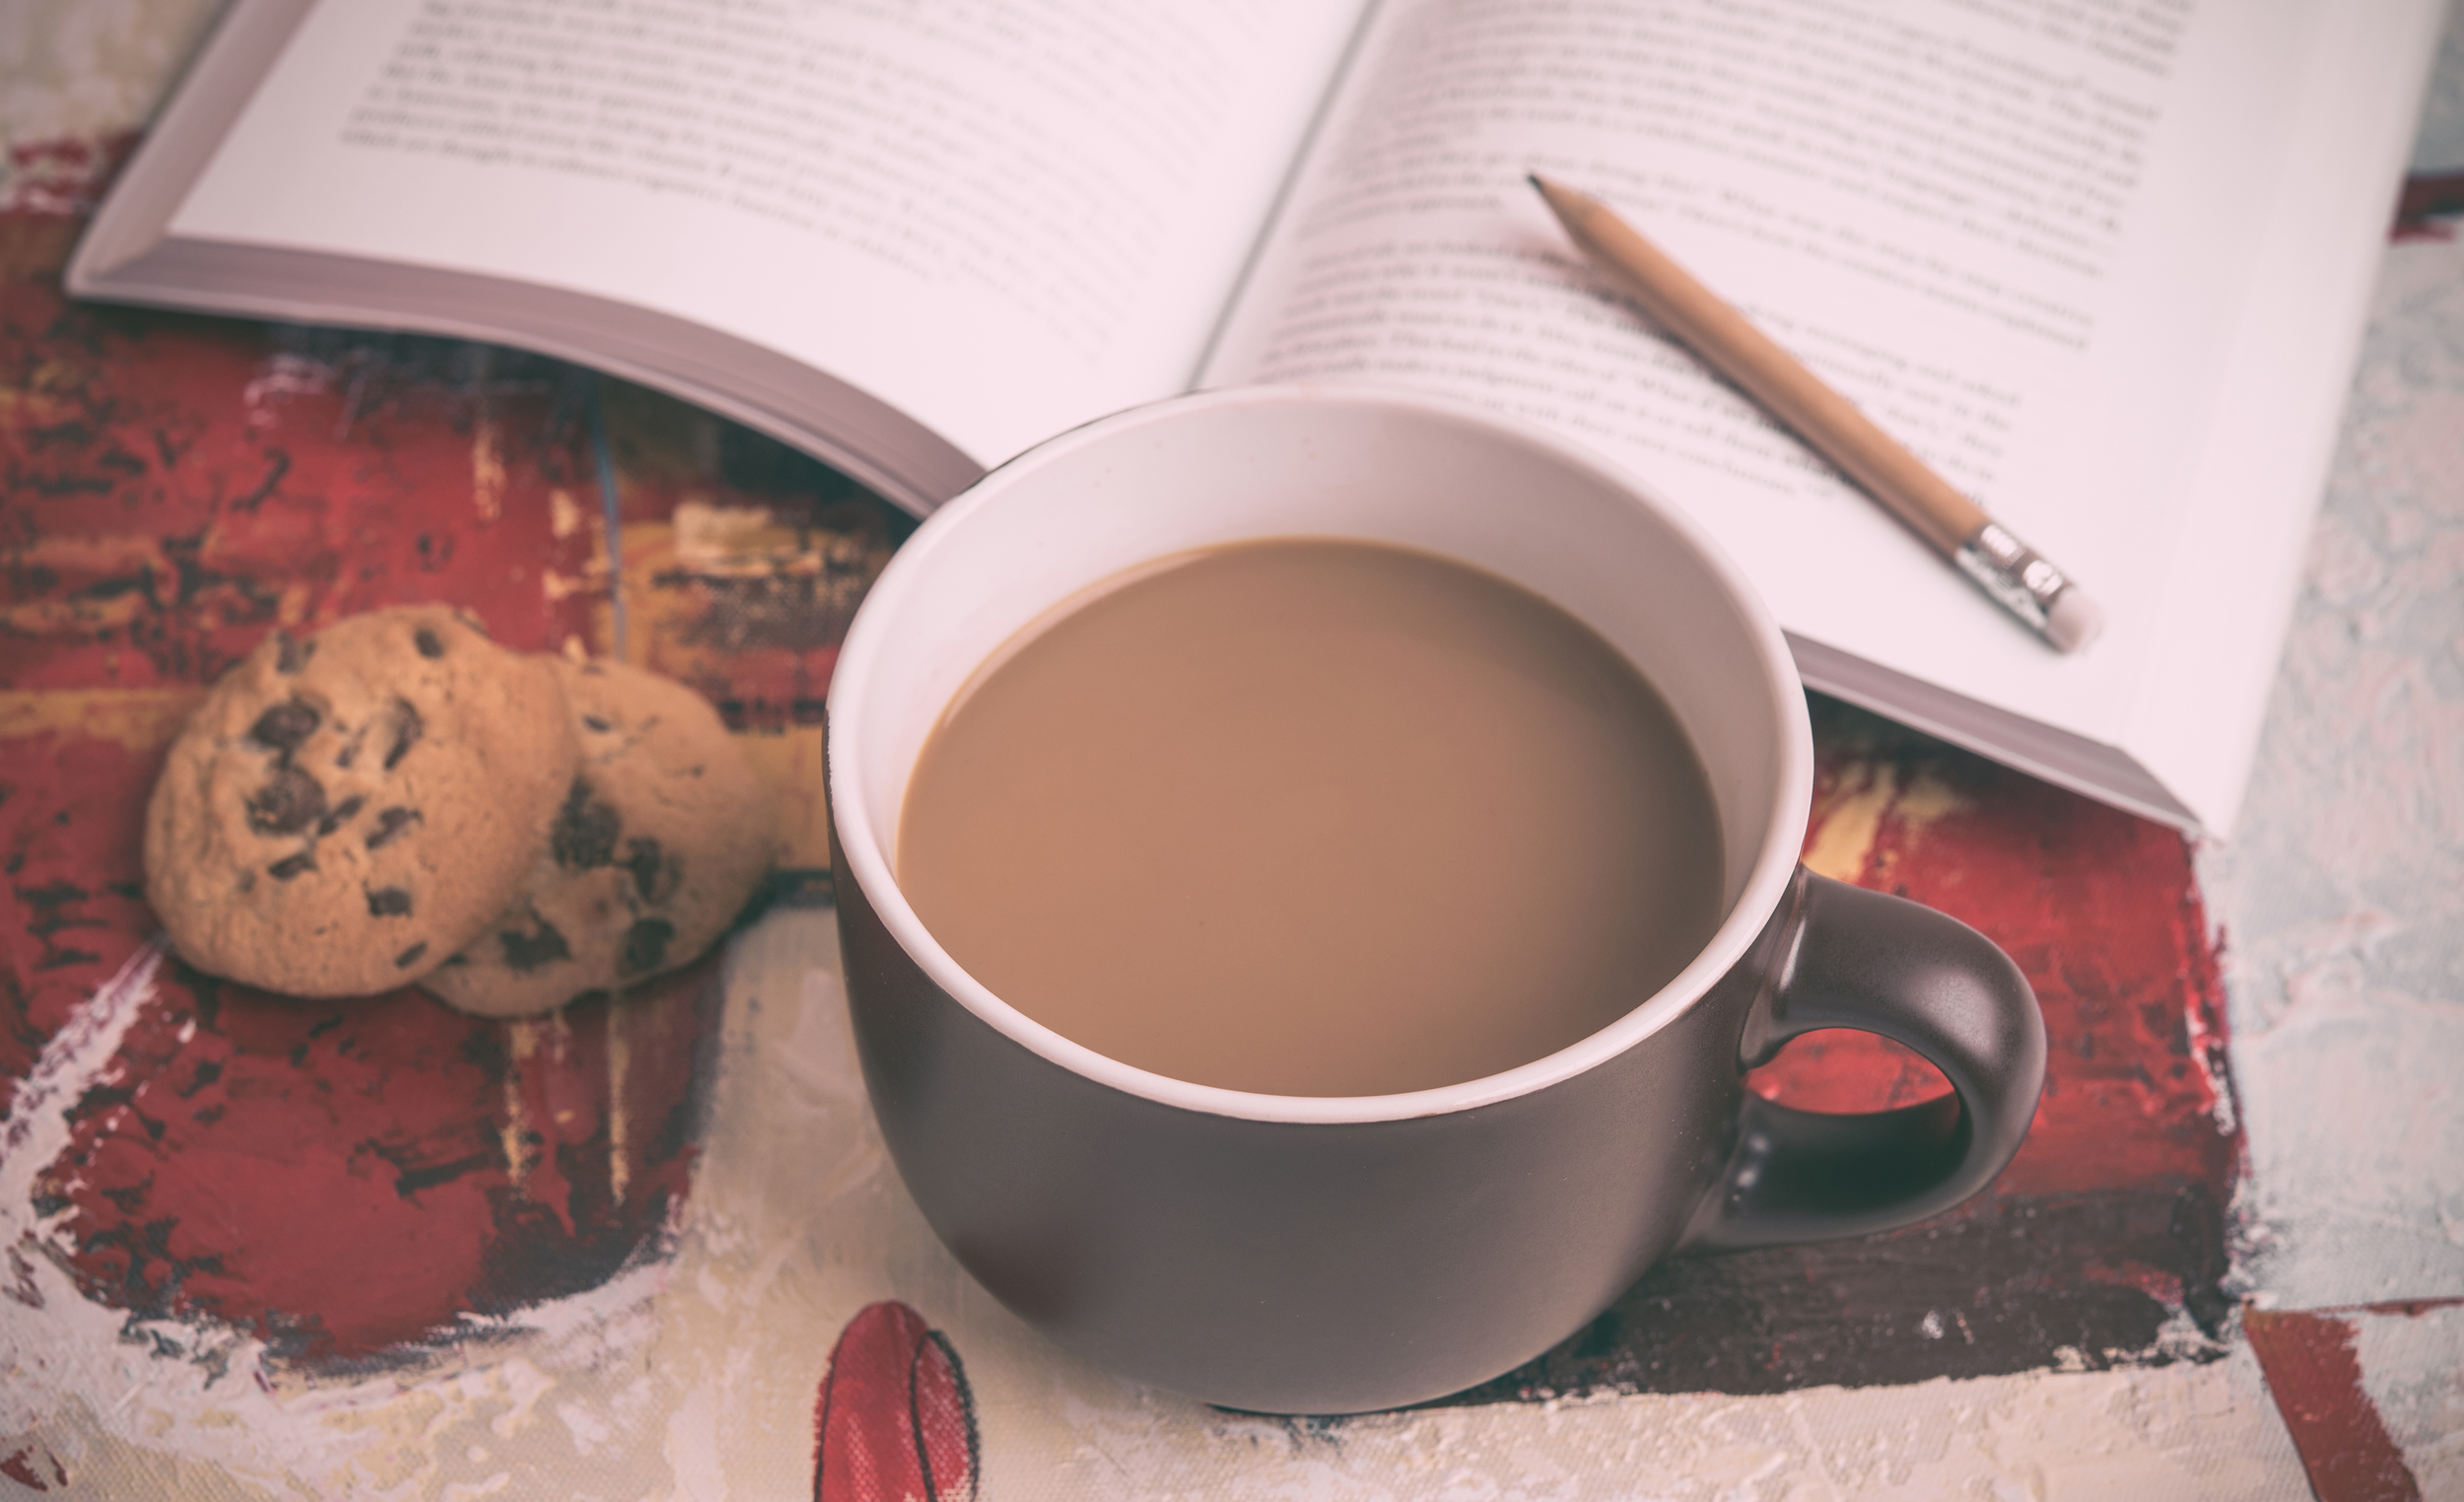 Wouldn't you love to go to class from the comfort of your couch while having your coffee and eating cookies?  Source:  unsplash